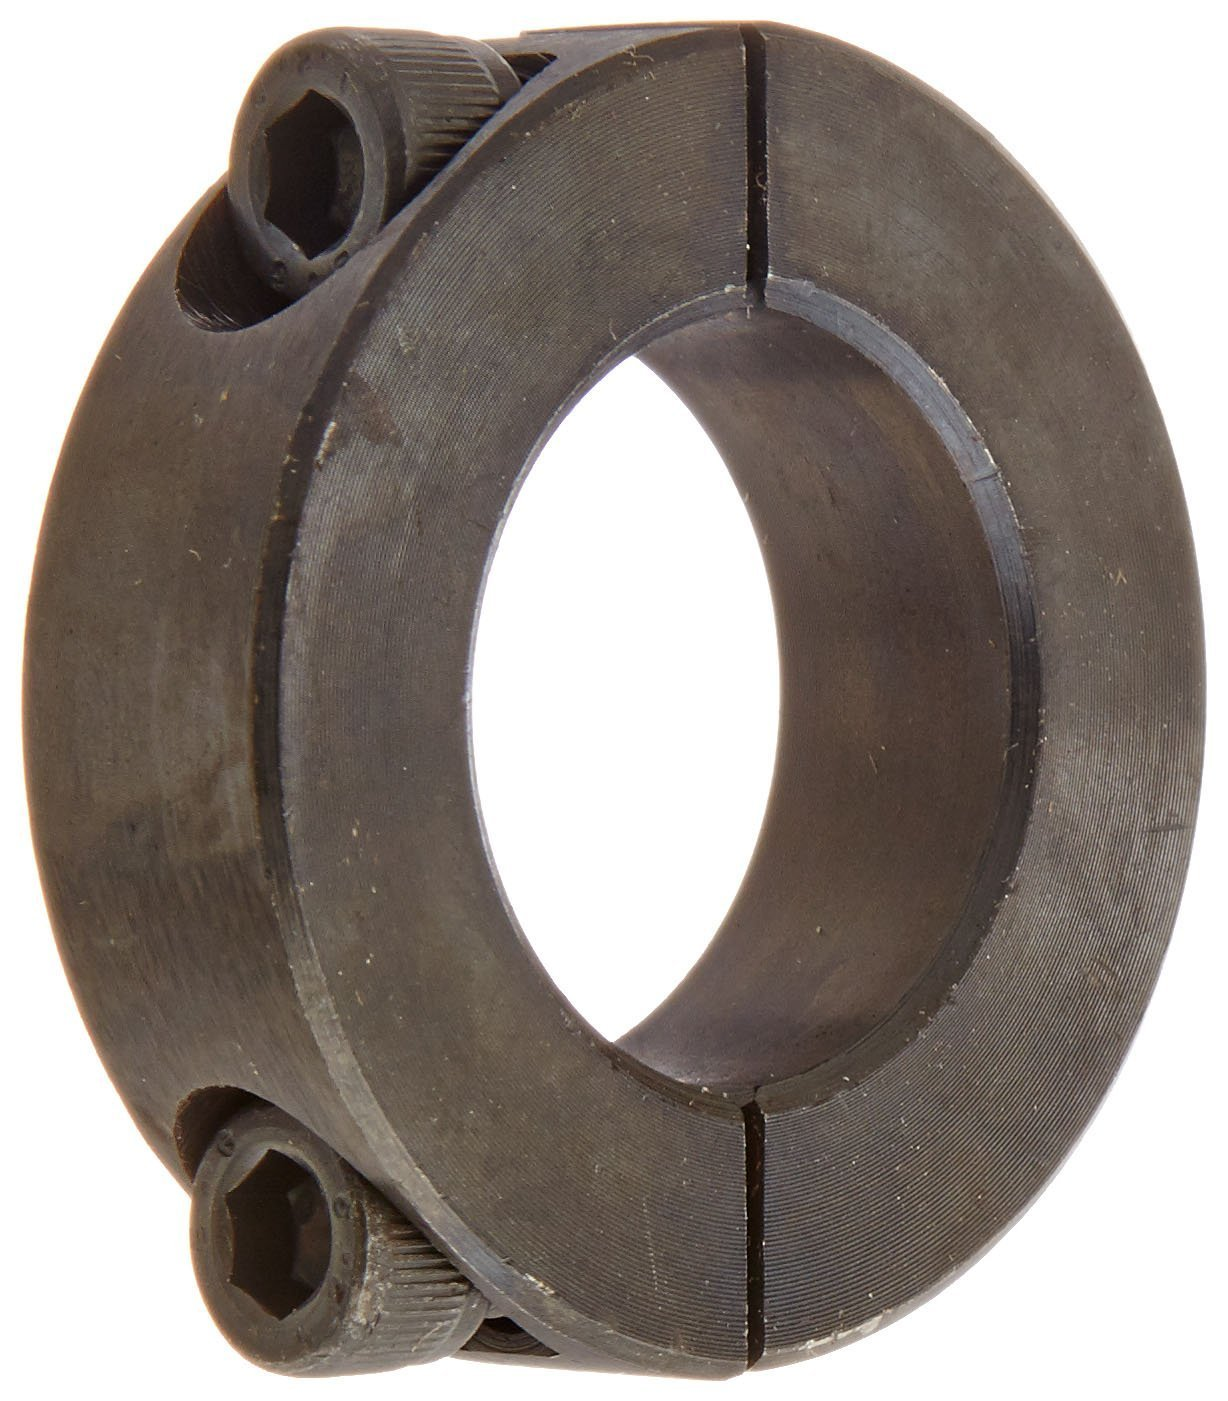 Black Oxide Plating Steel 1//2 inch Width Clamping Collar Mild Steel 1 3//4 inch OD 1//4-28 x 5//8 Inch Clamp Screw 1 inch bore